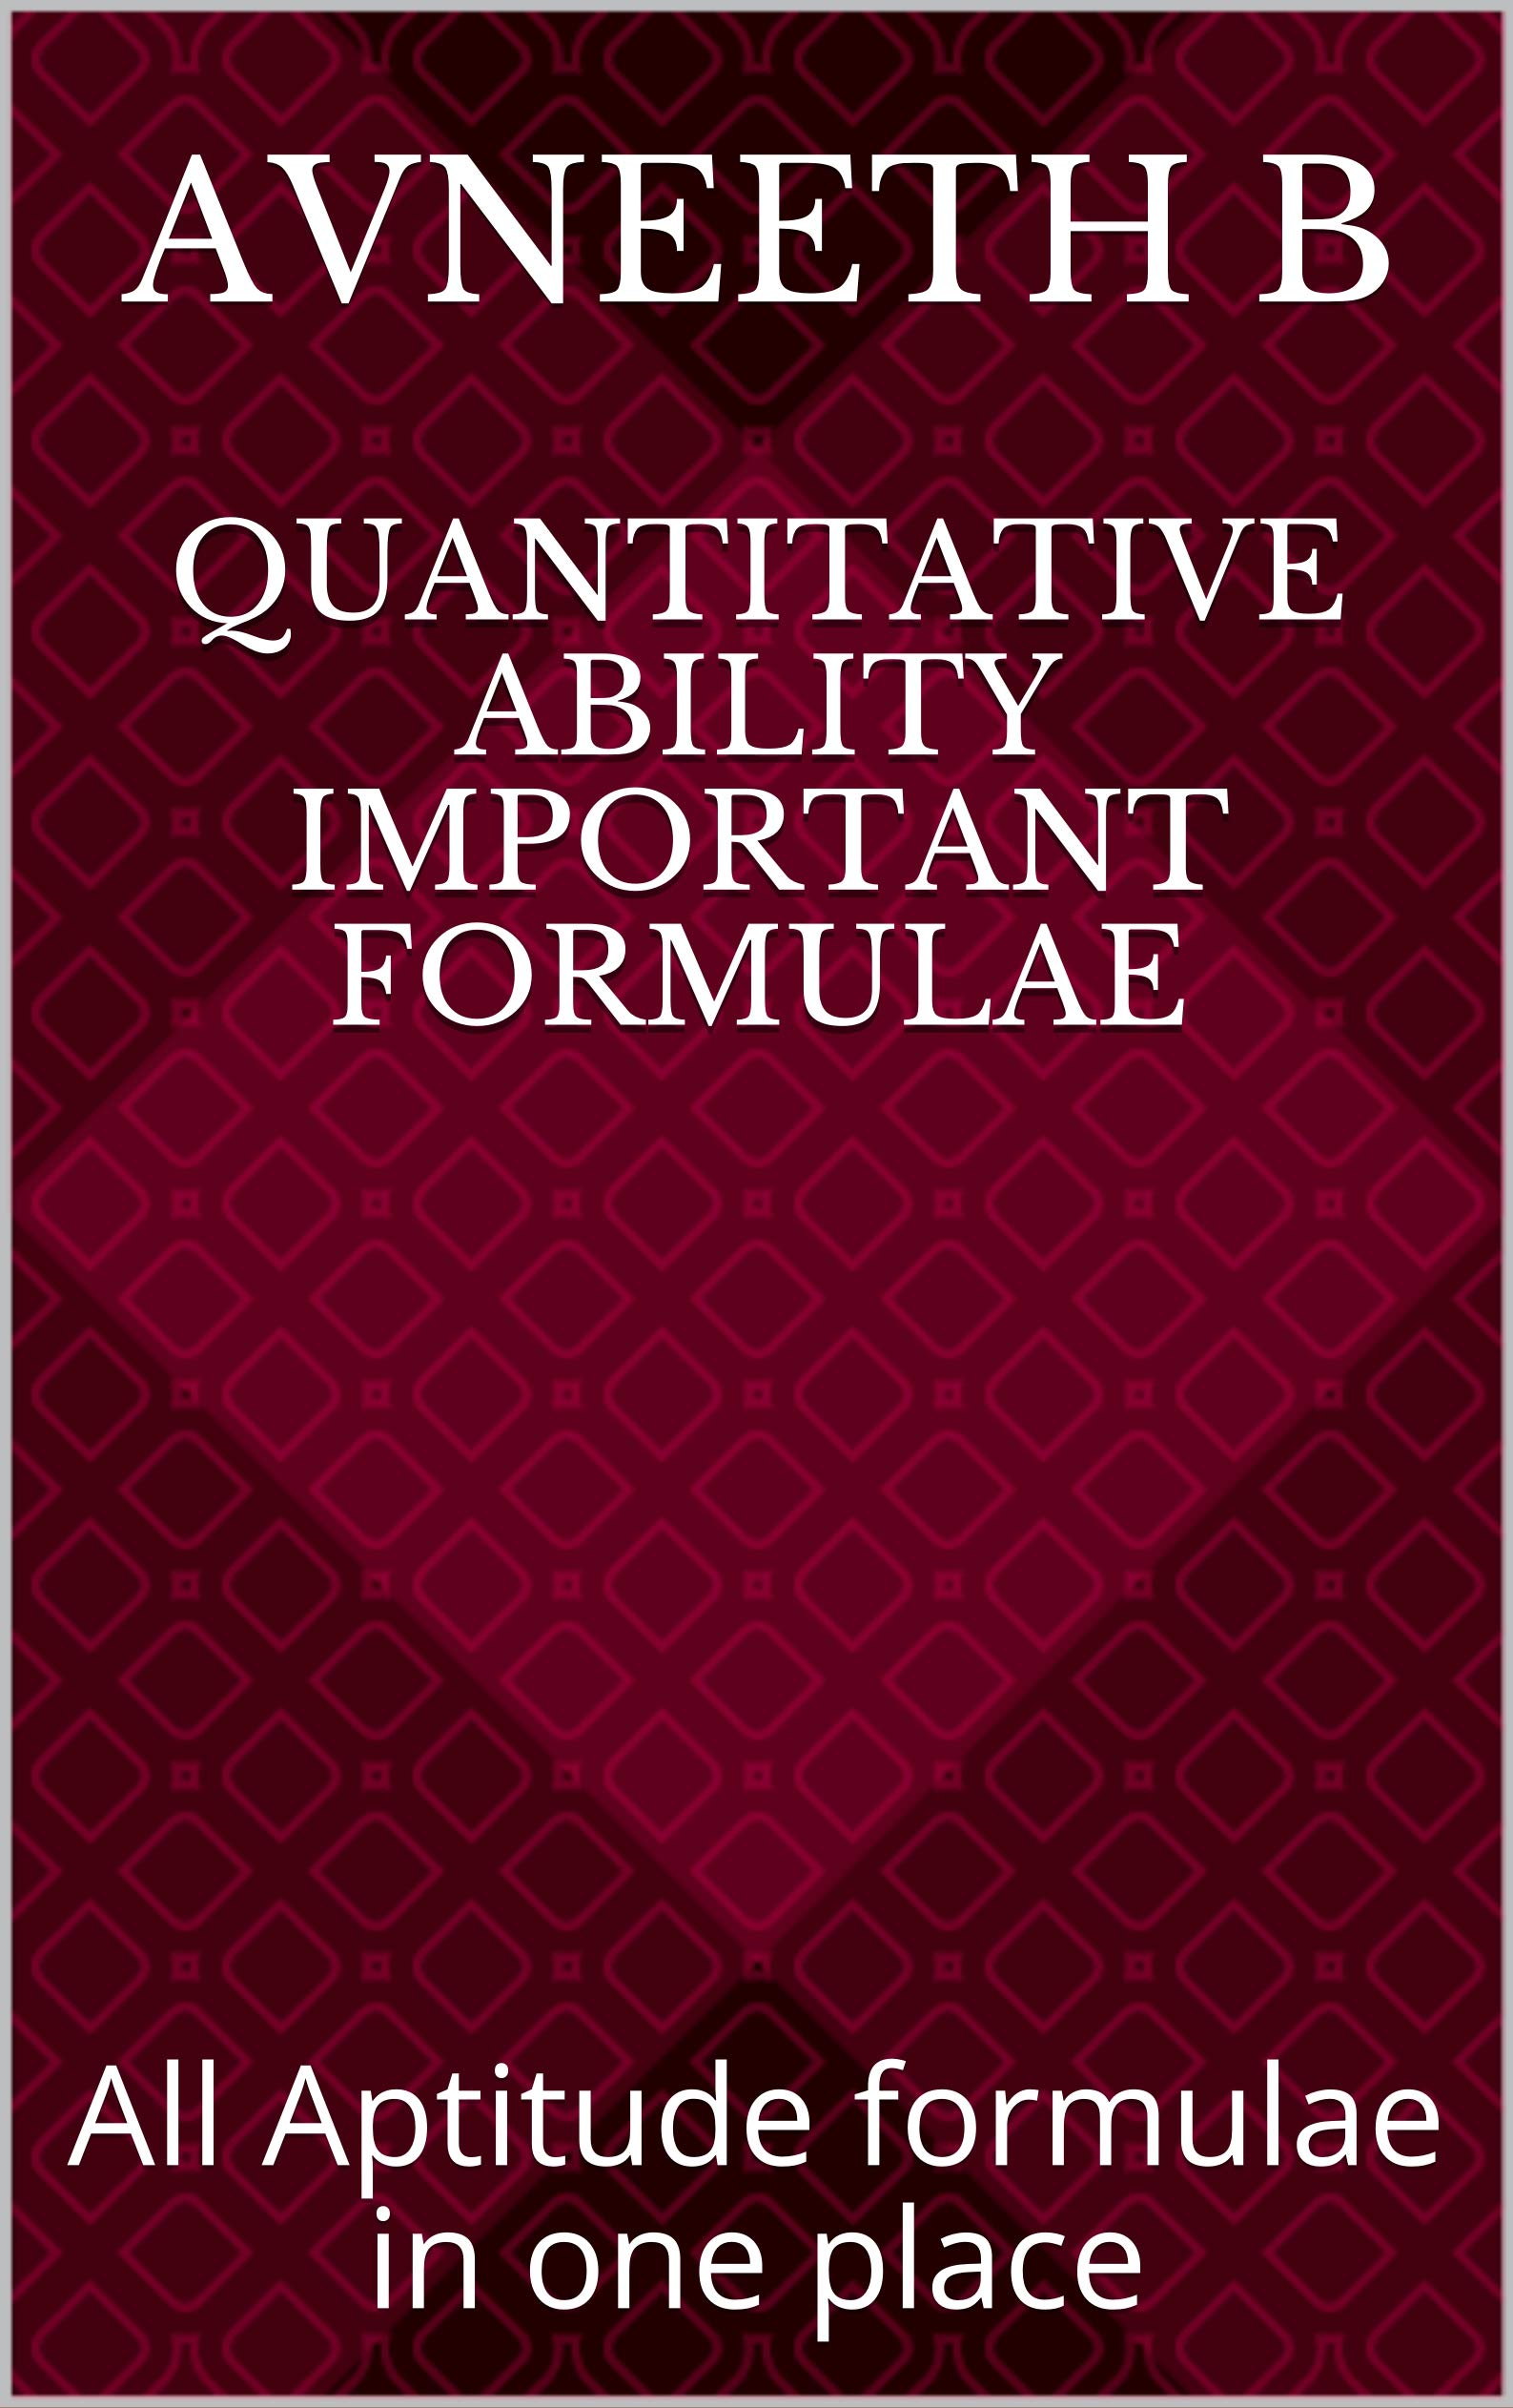 Quantitative Ability Important formulae: All Aptitude formulae in one place